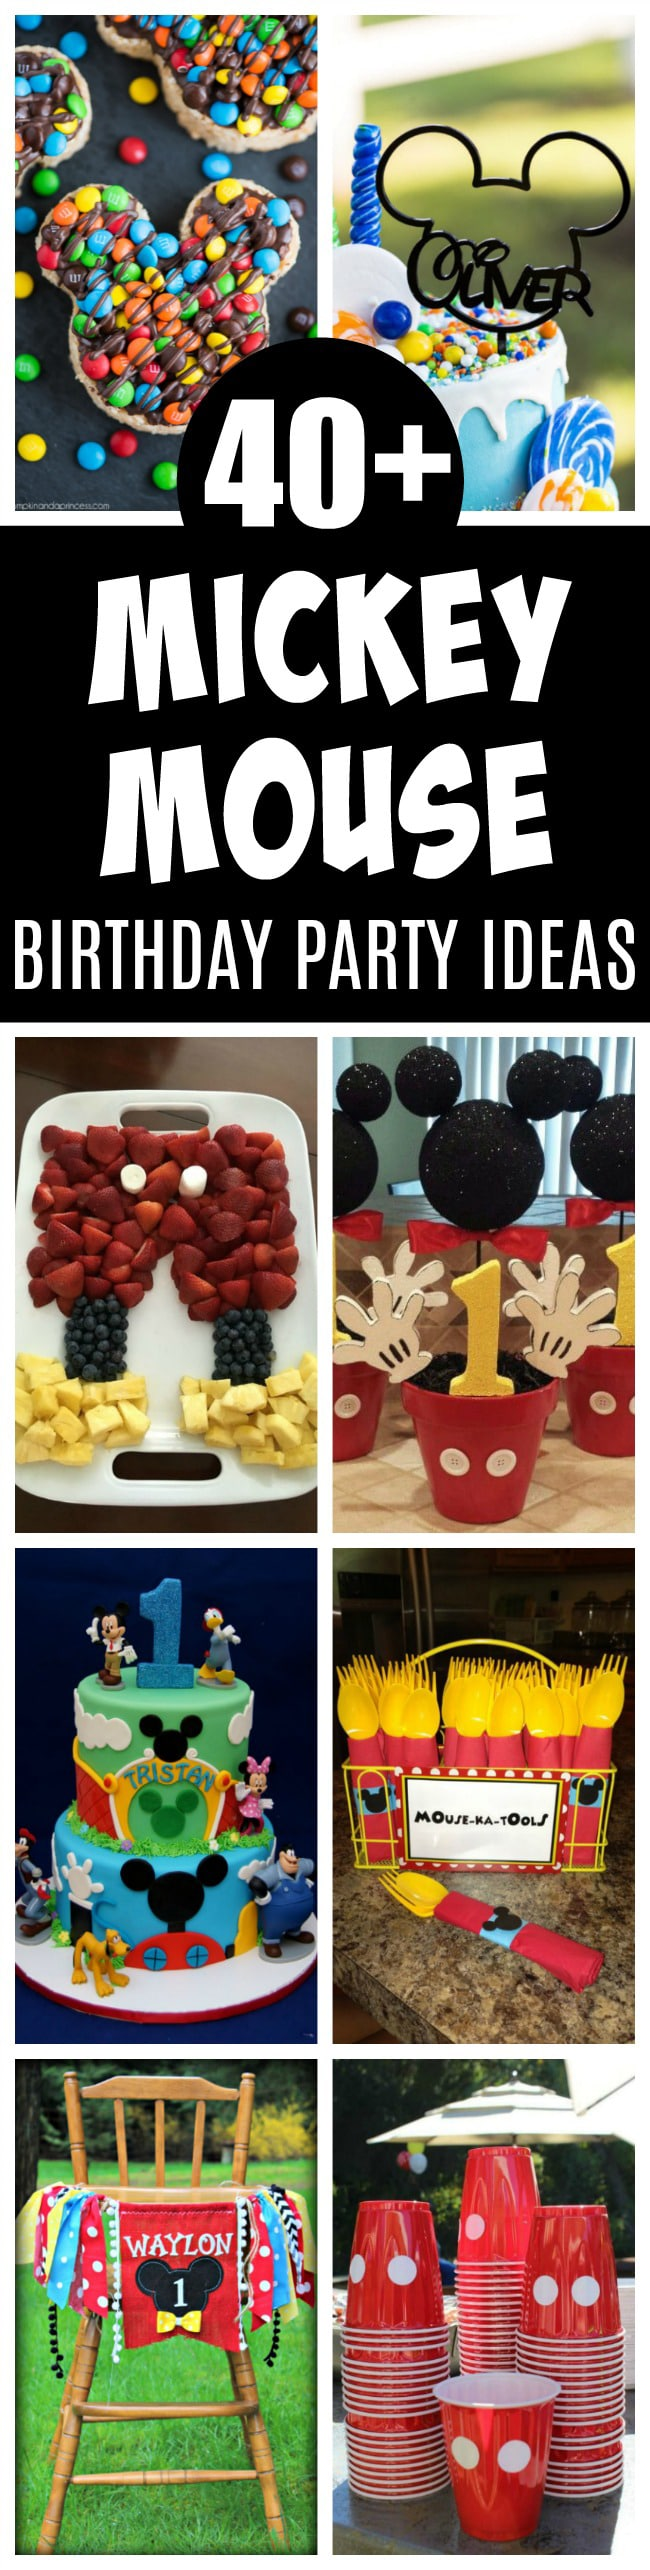 40 Mickey Mouse Birthday